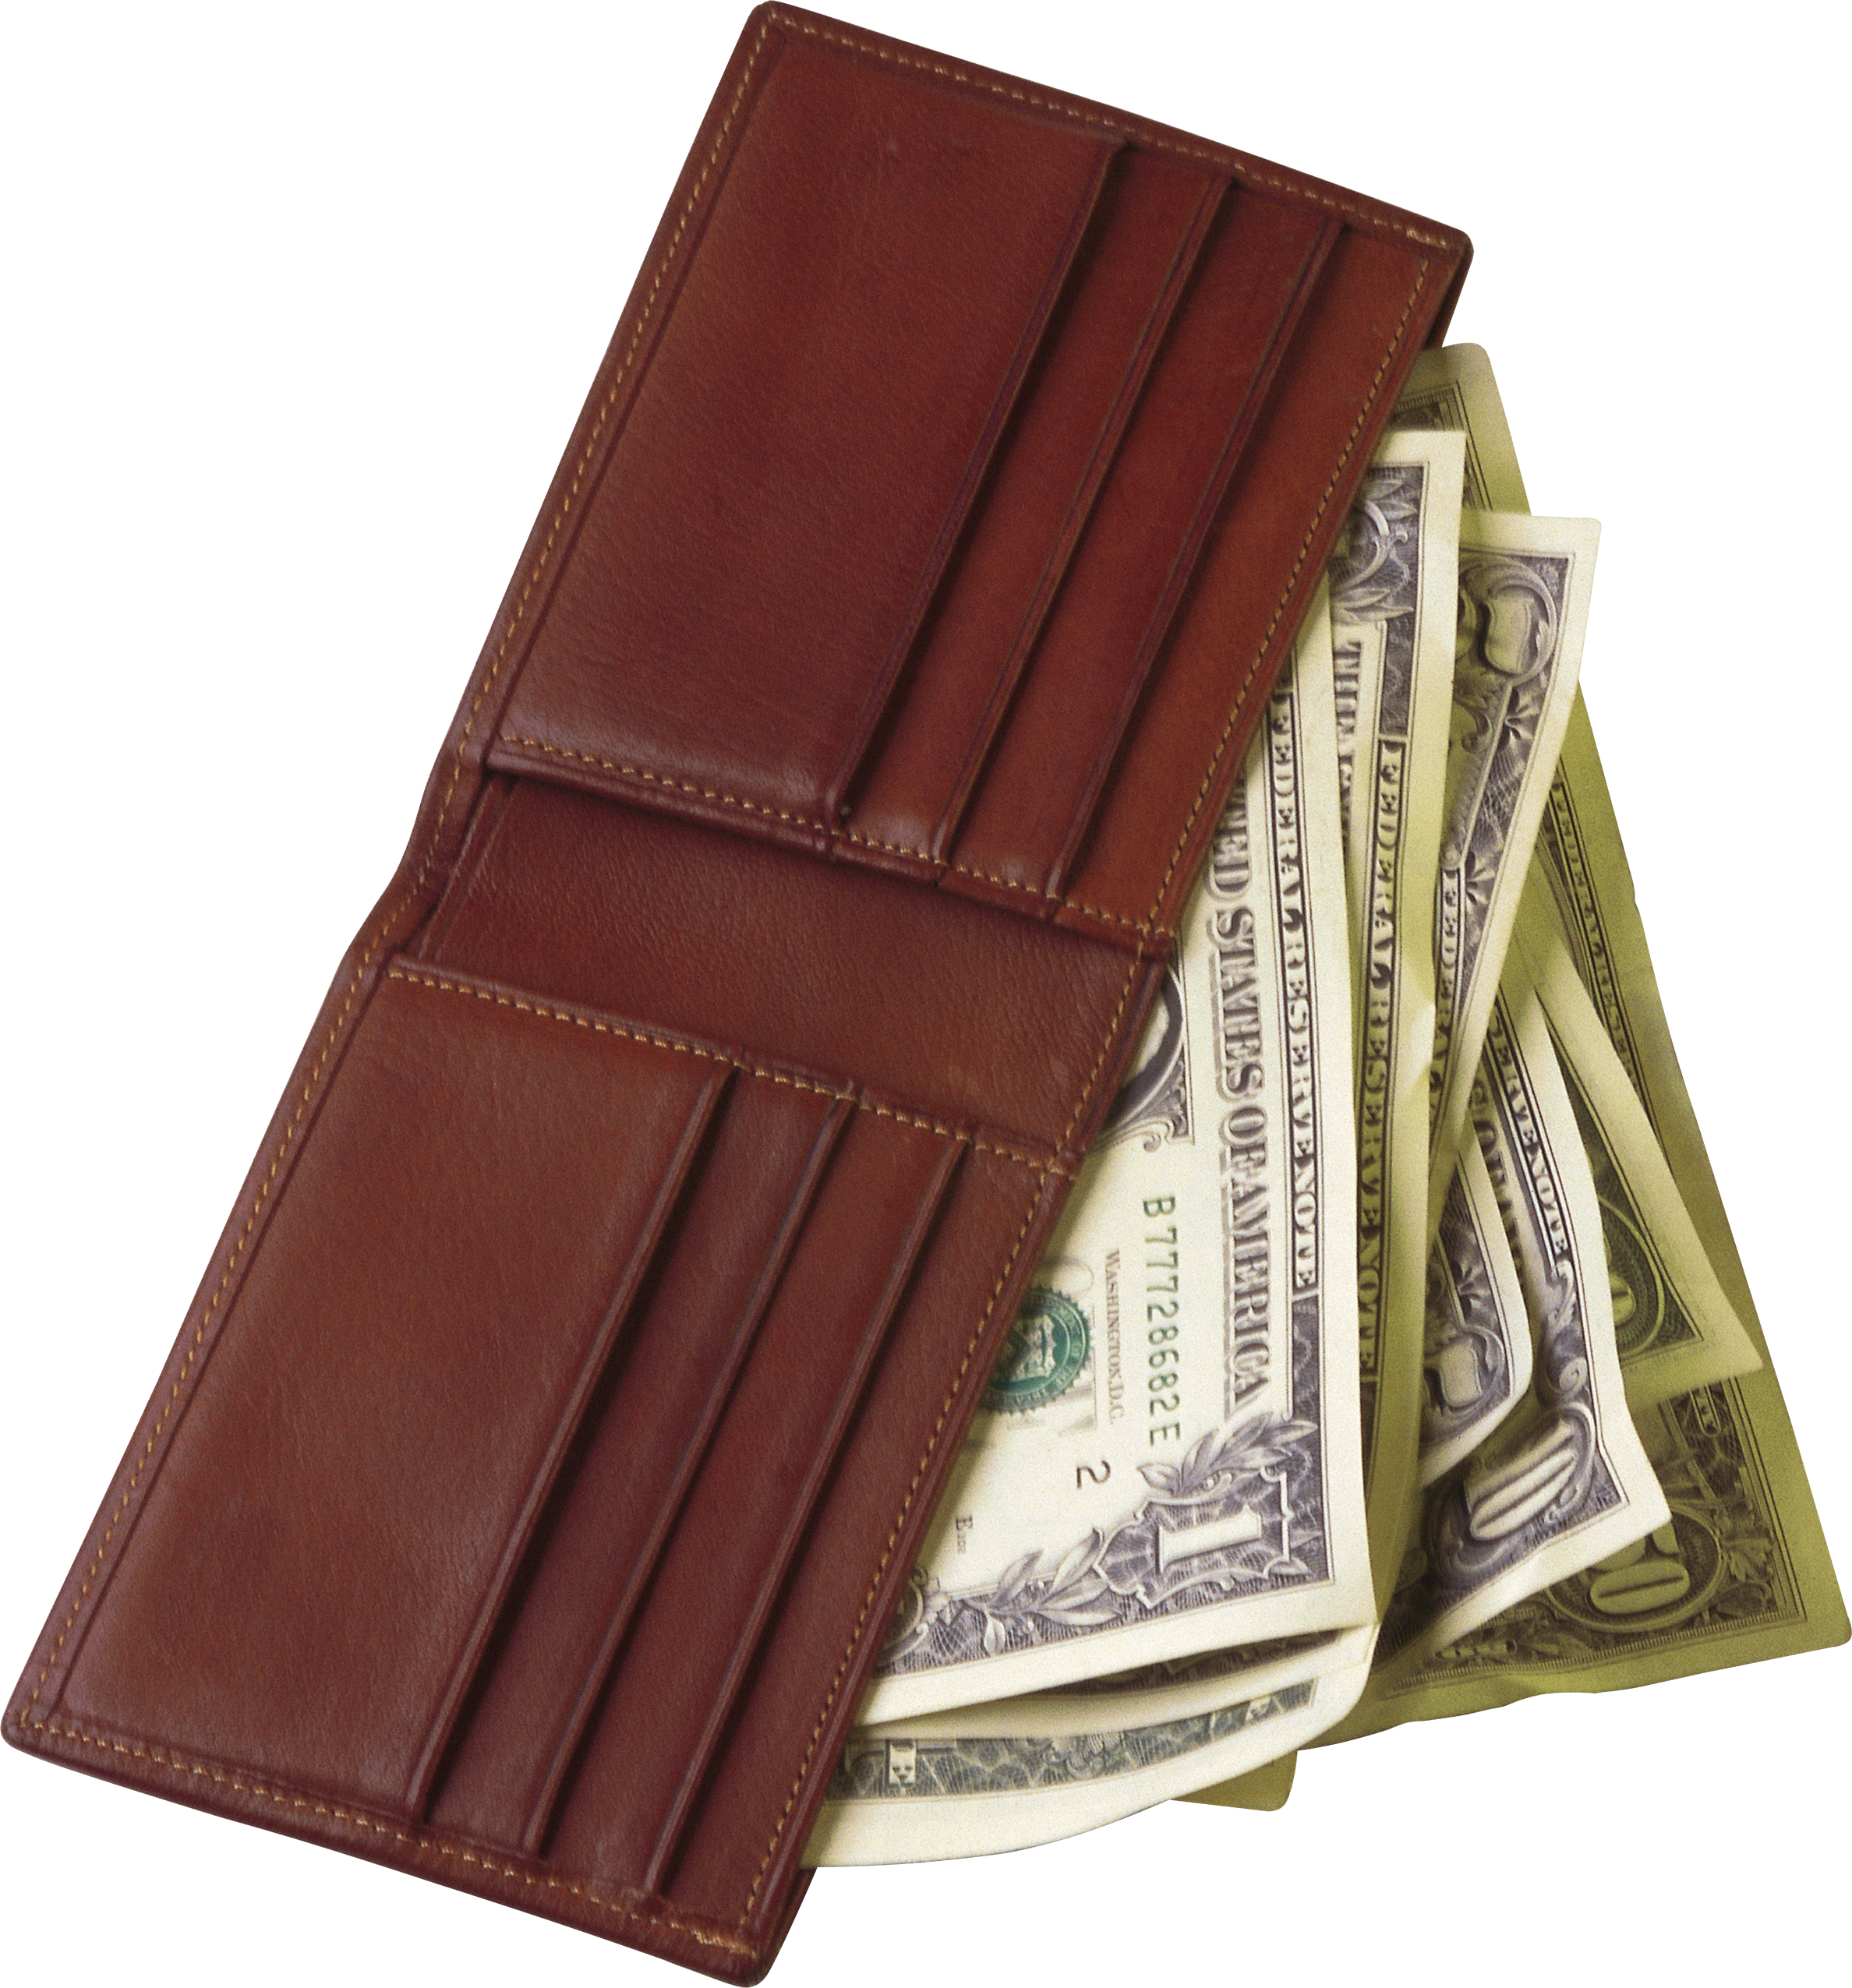 money png image  free money pictures download money bag clip art free money bag clipart transparent background